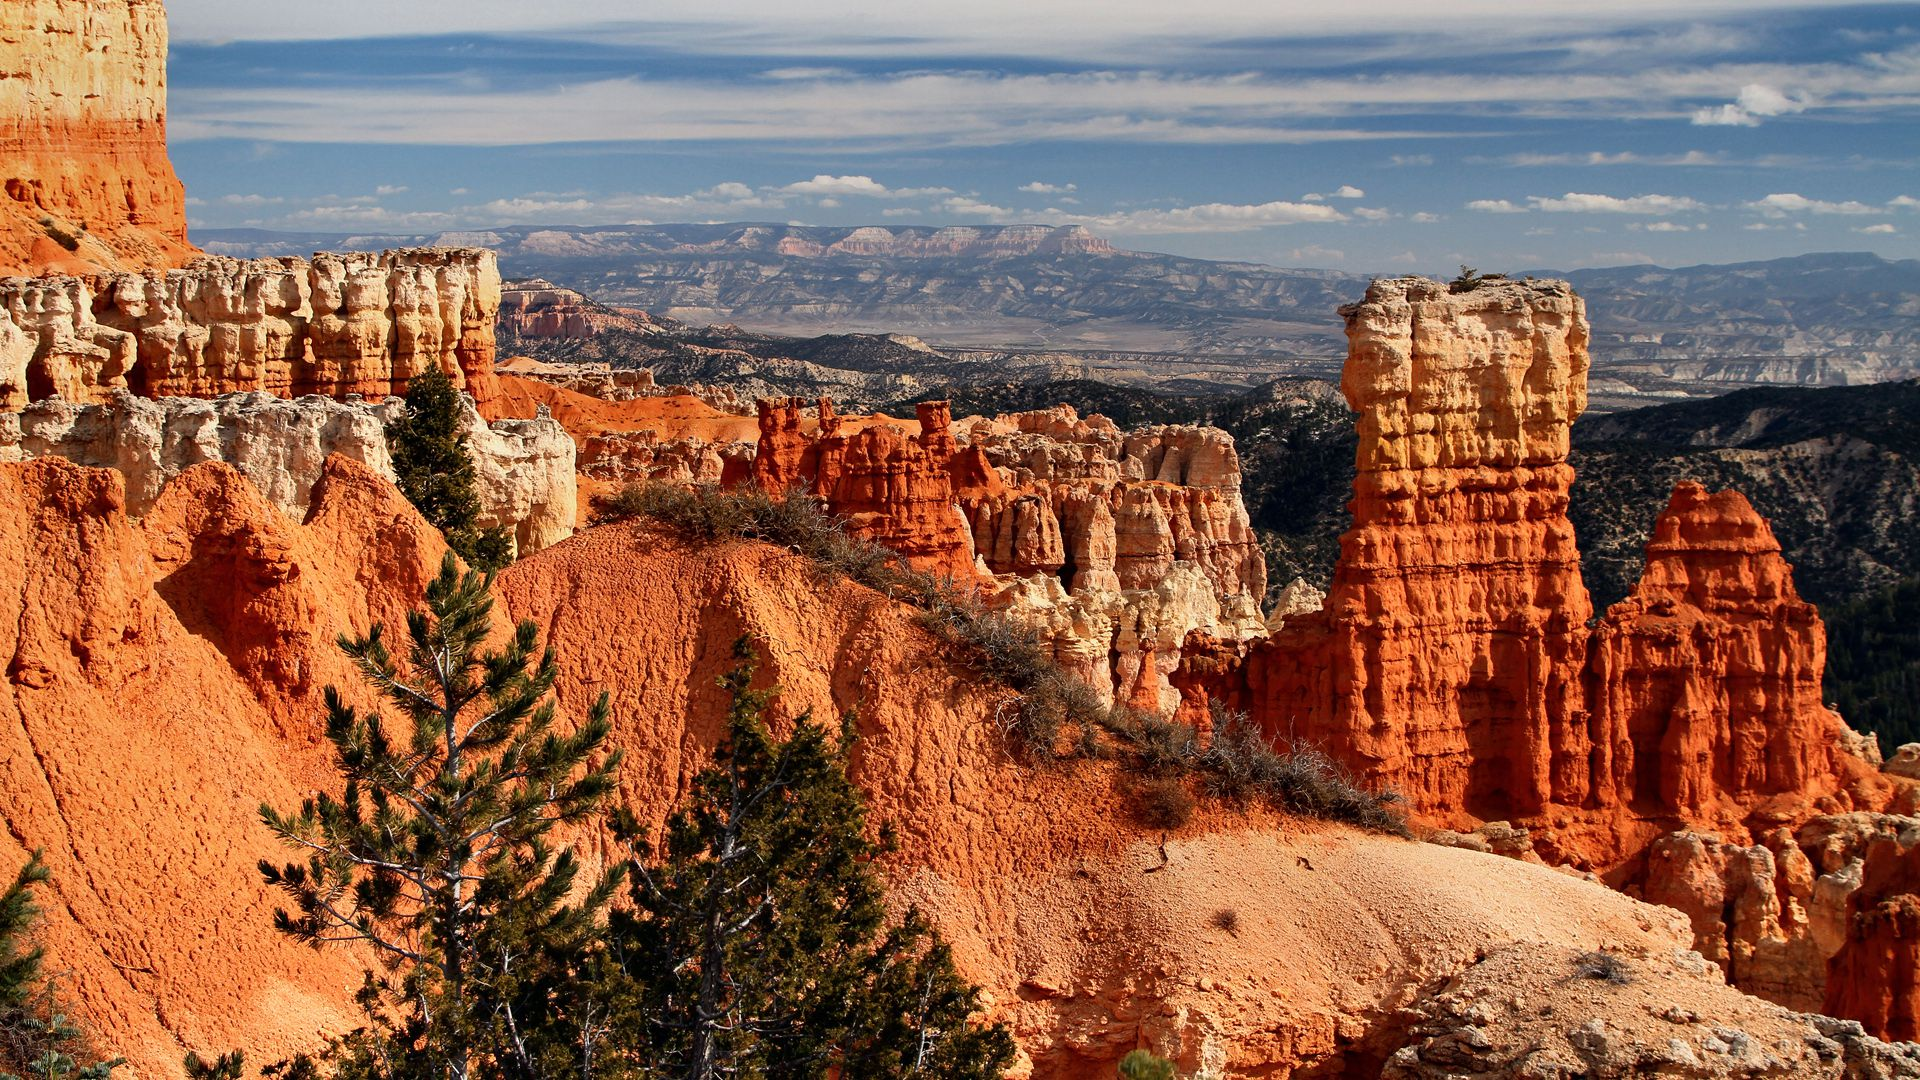 nature landscapes canyon rocks colors scenic view sky clouds desert plants trees red detail